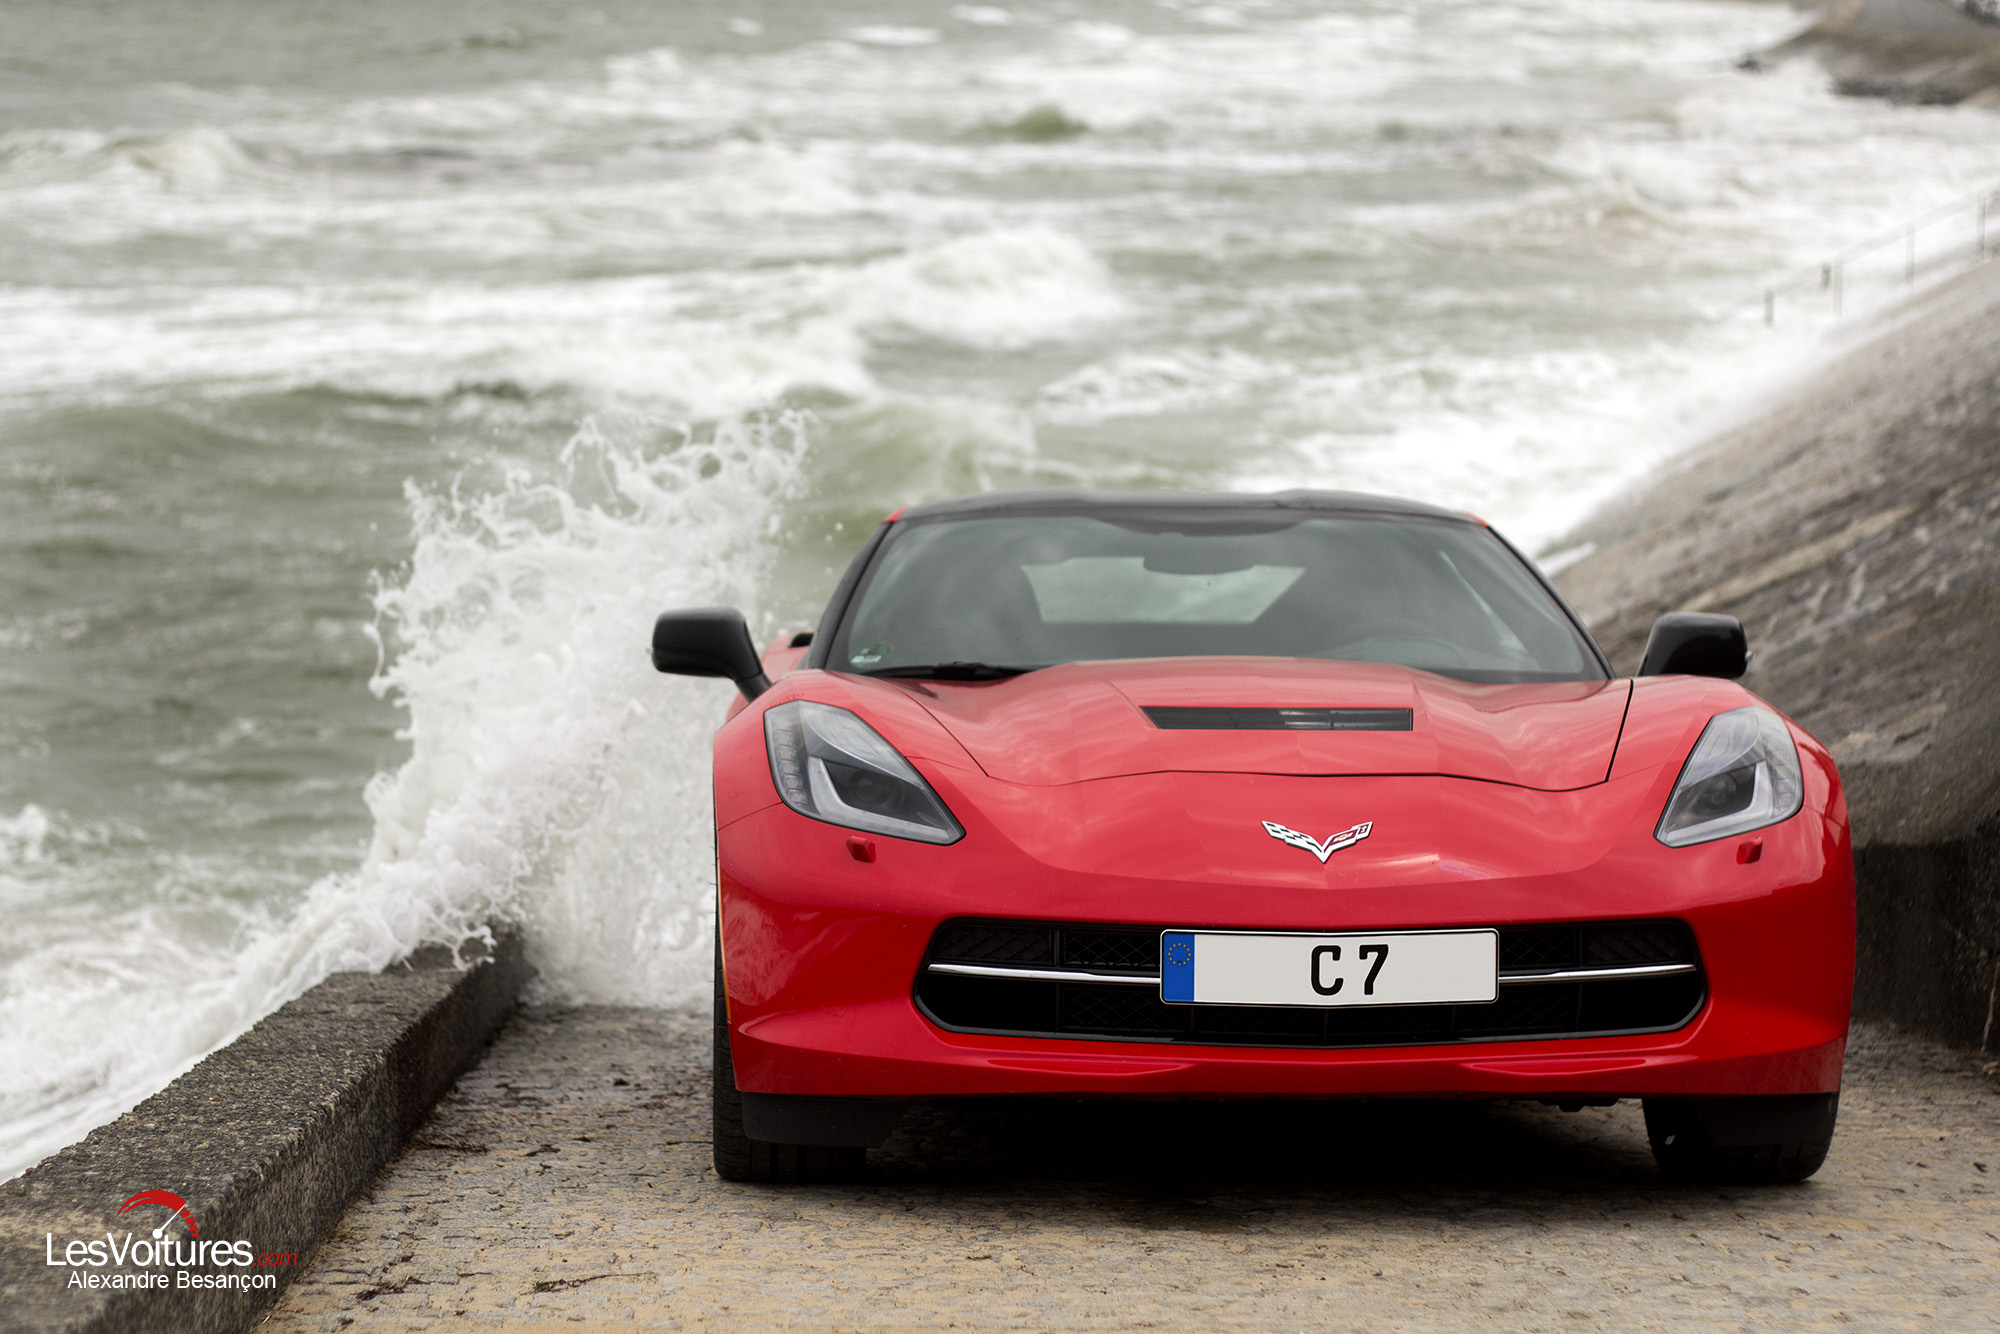 Corvette C7 Stingray : road trip hommage en Normandie…